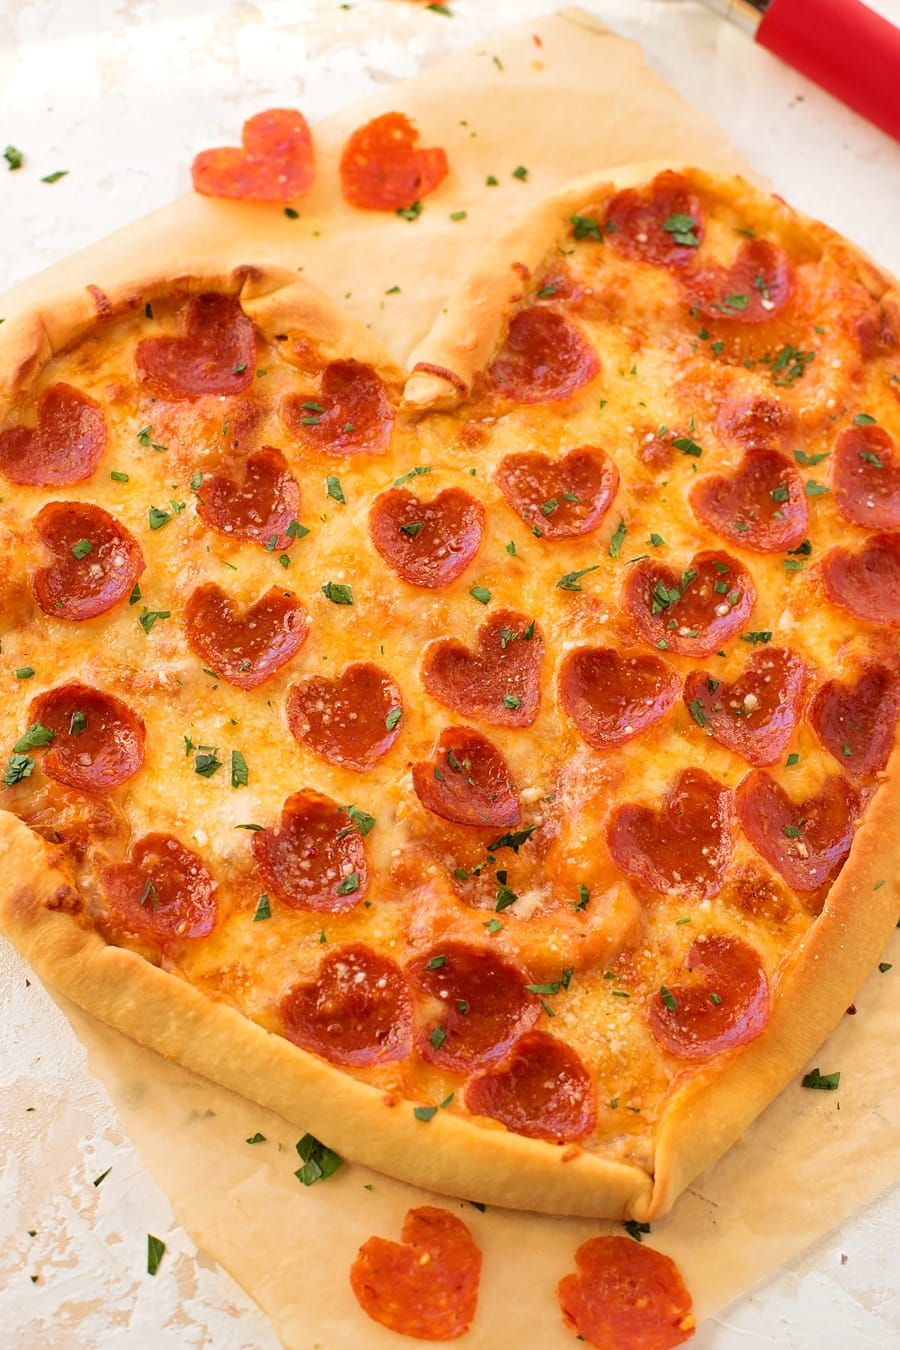 This homemade Heart Shaped Pizza is a delicious and simple pizza that is perfect for Valentine's Day or special occasions.